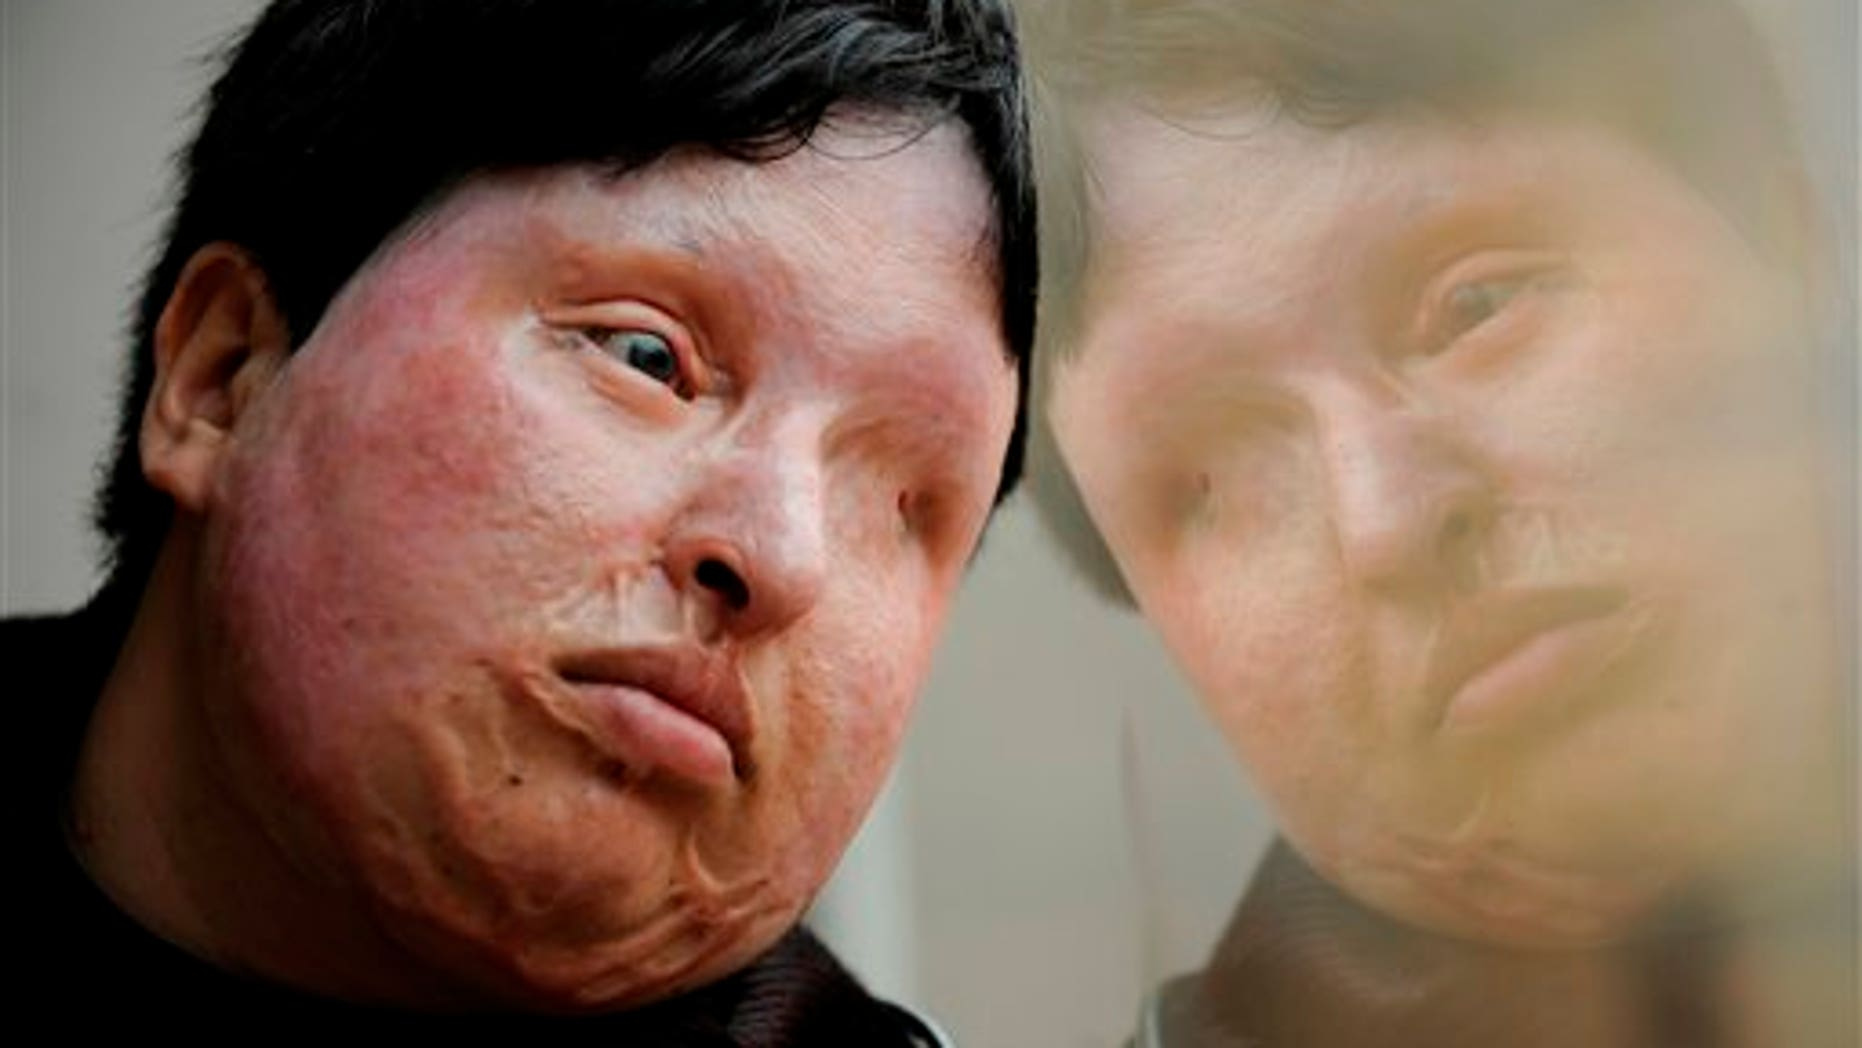 In this March 4, 2009 file photo, Ameneh Bahrami, who was blinded and disfigured by a man who poured acid on her face in 2004 for rejecting his marriage proposal, poses for a portrait at a hospital in Barcelona, Spain.